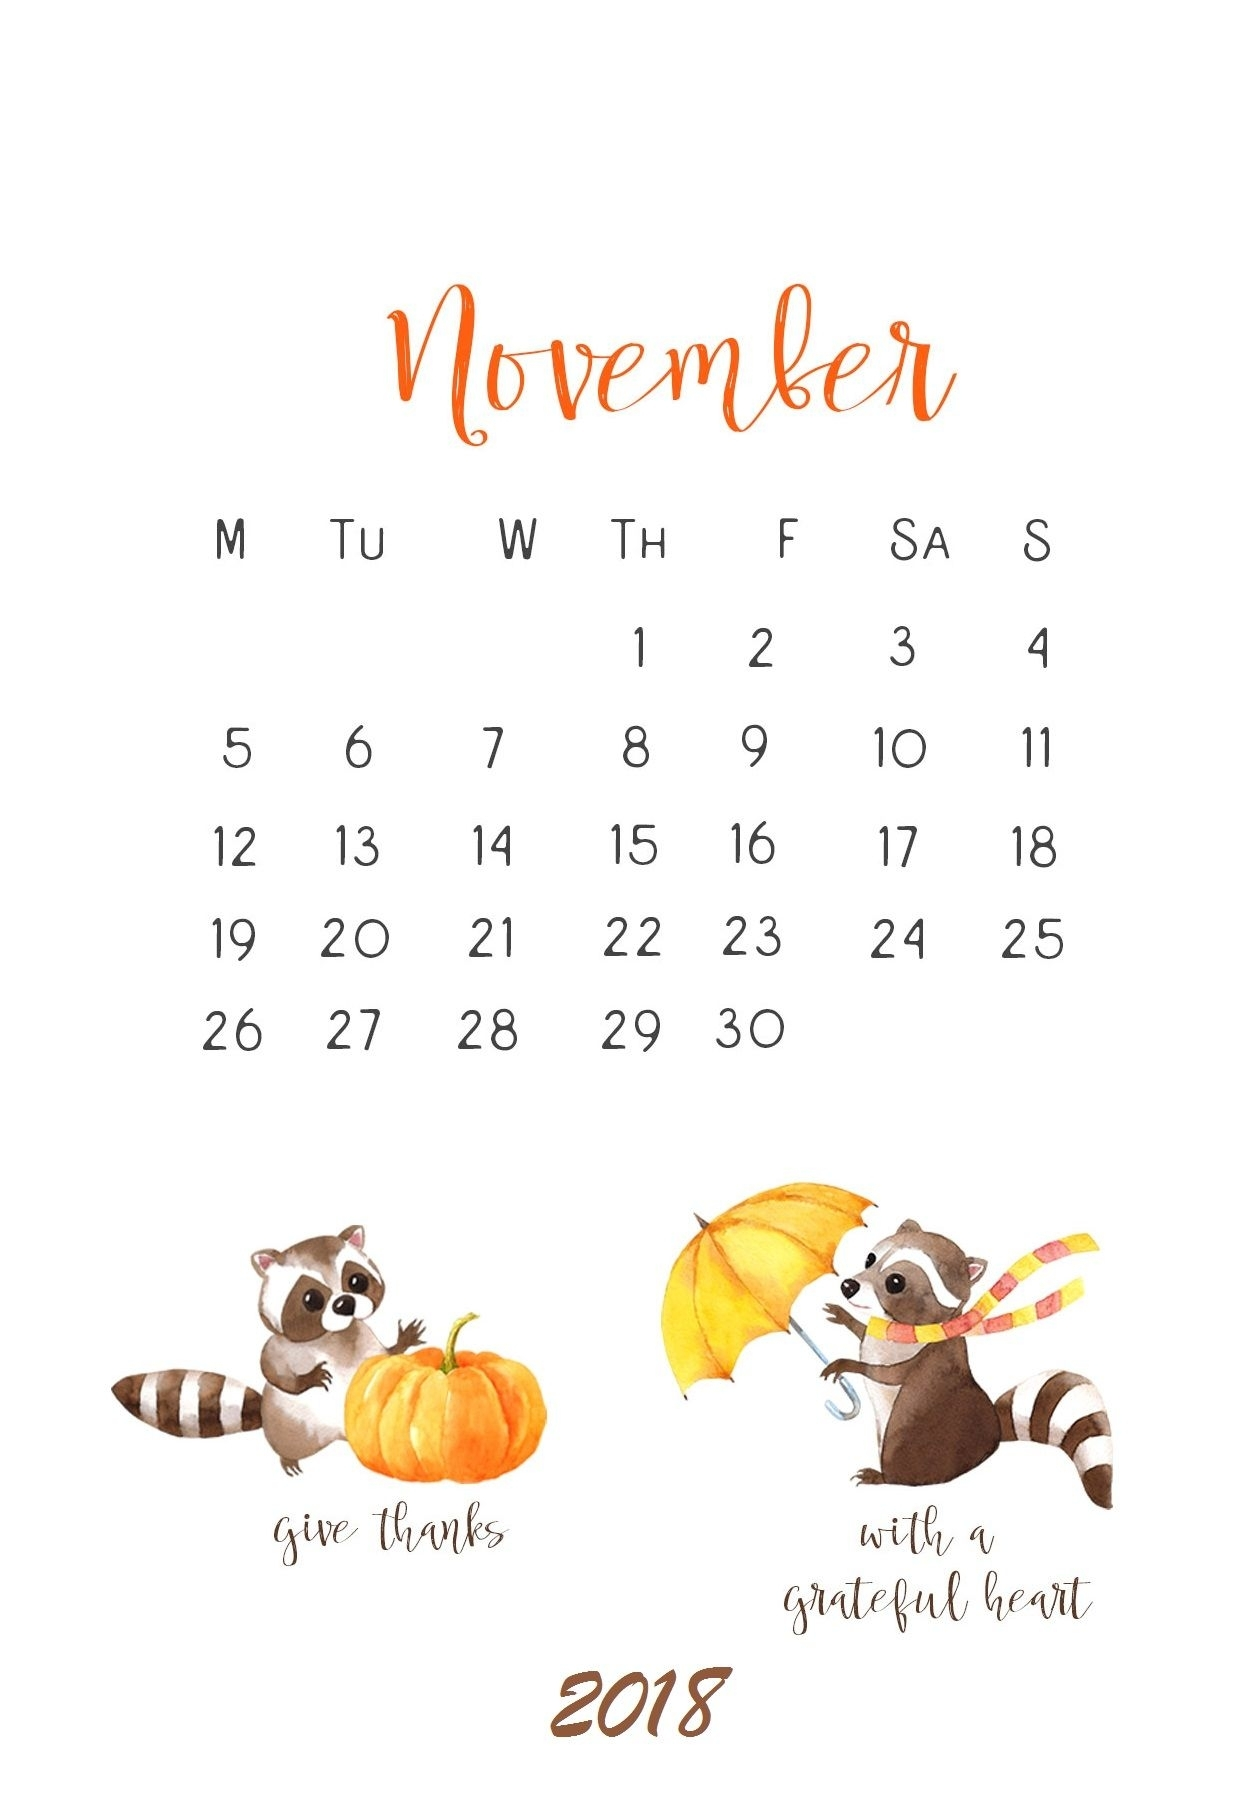 How To Print Calendar From Iphone 7 | Ten Free Printable ...